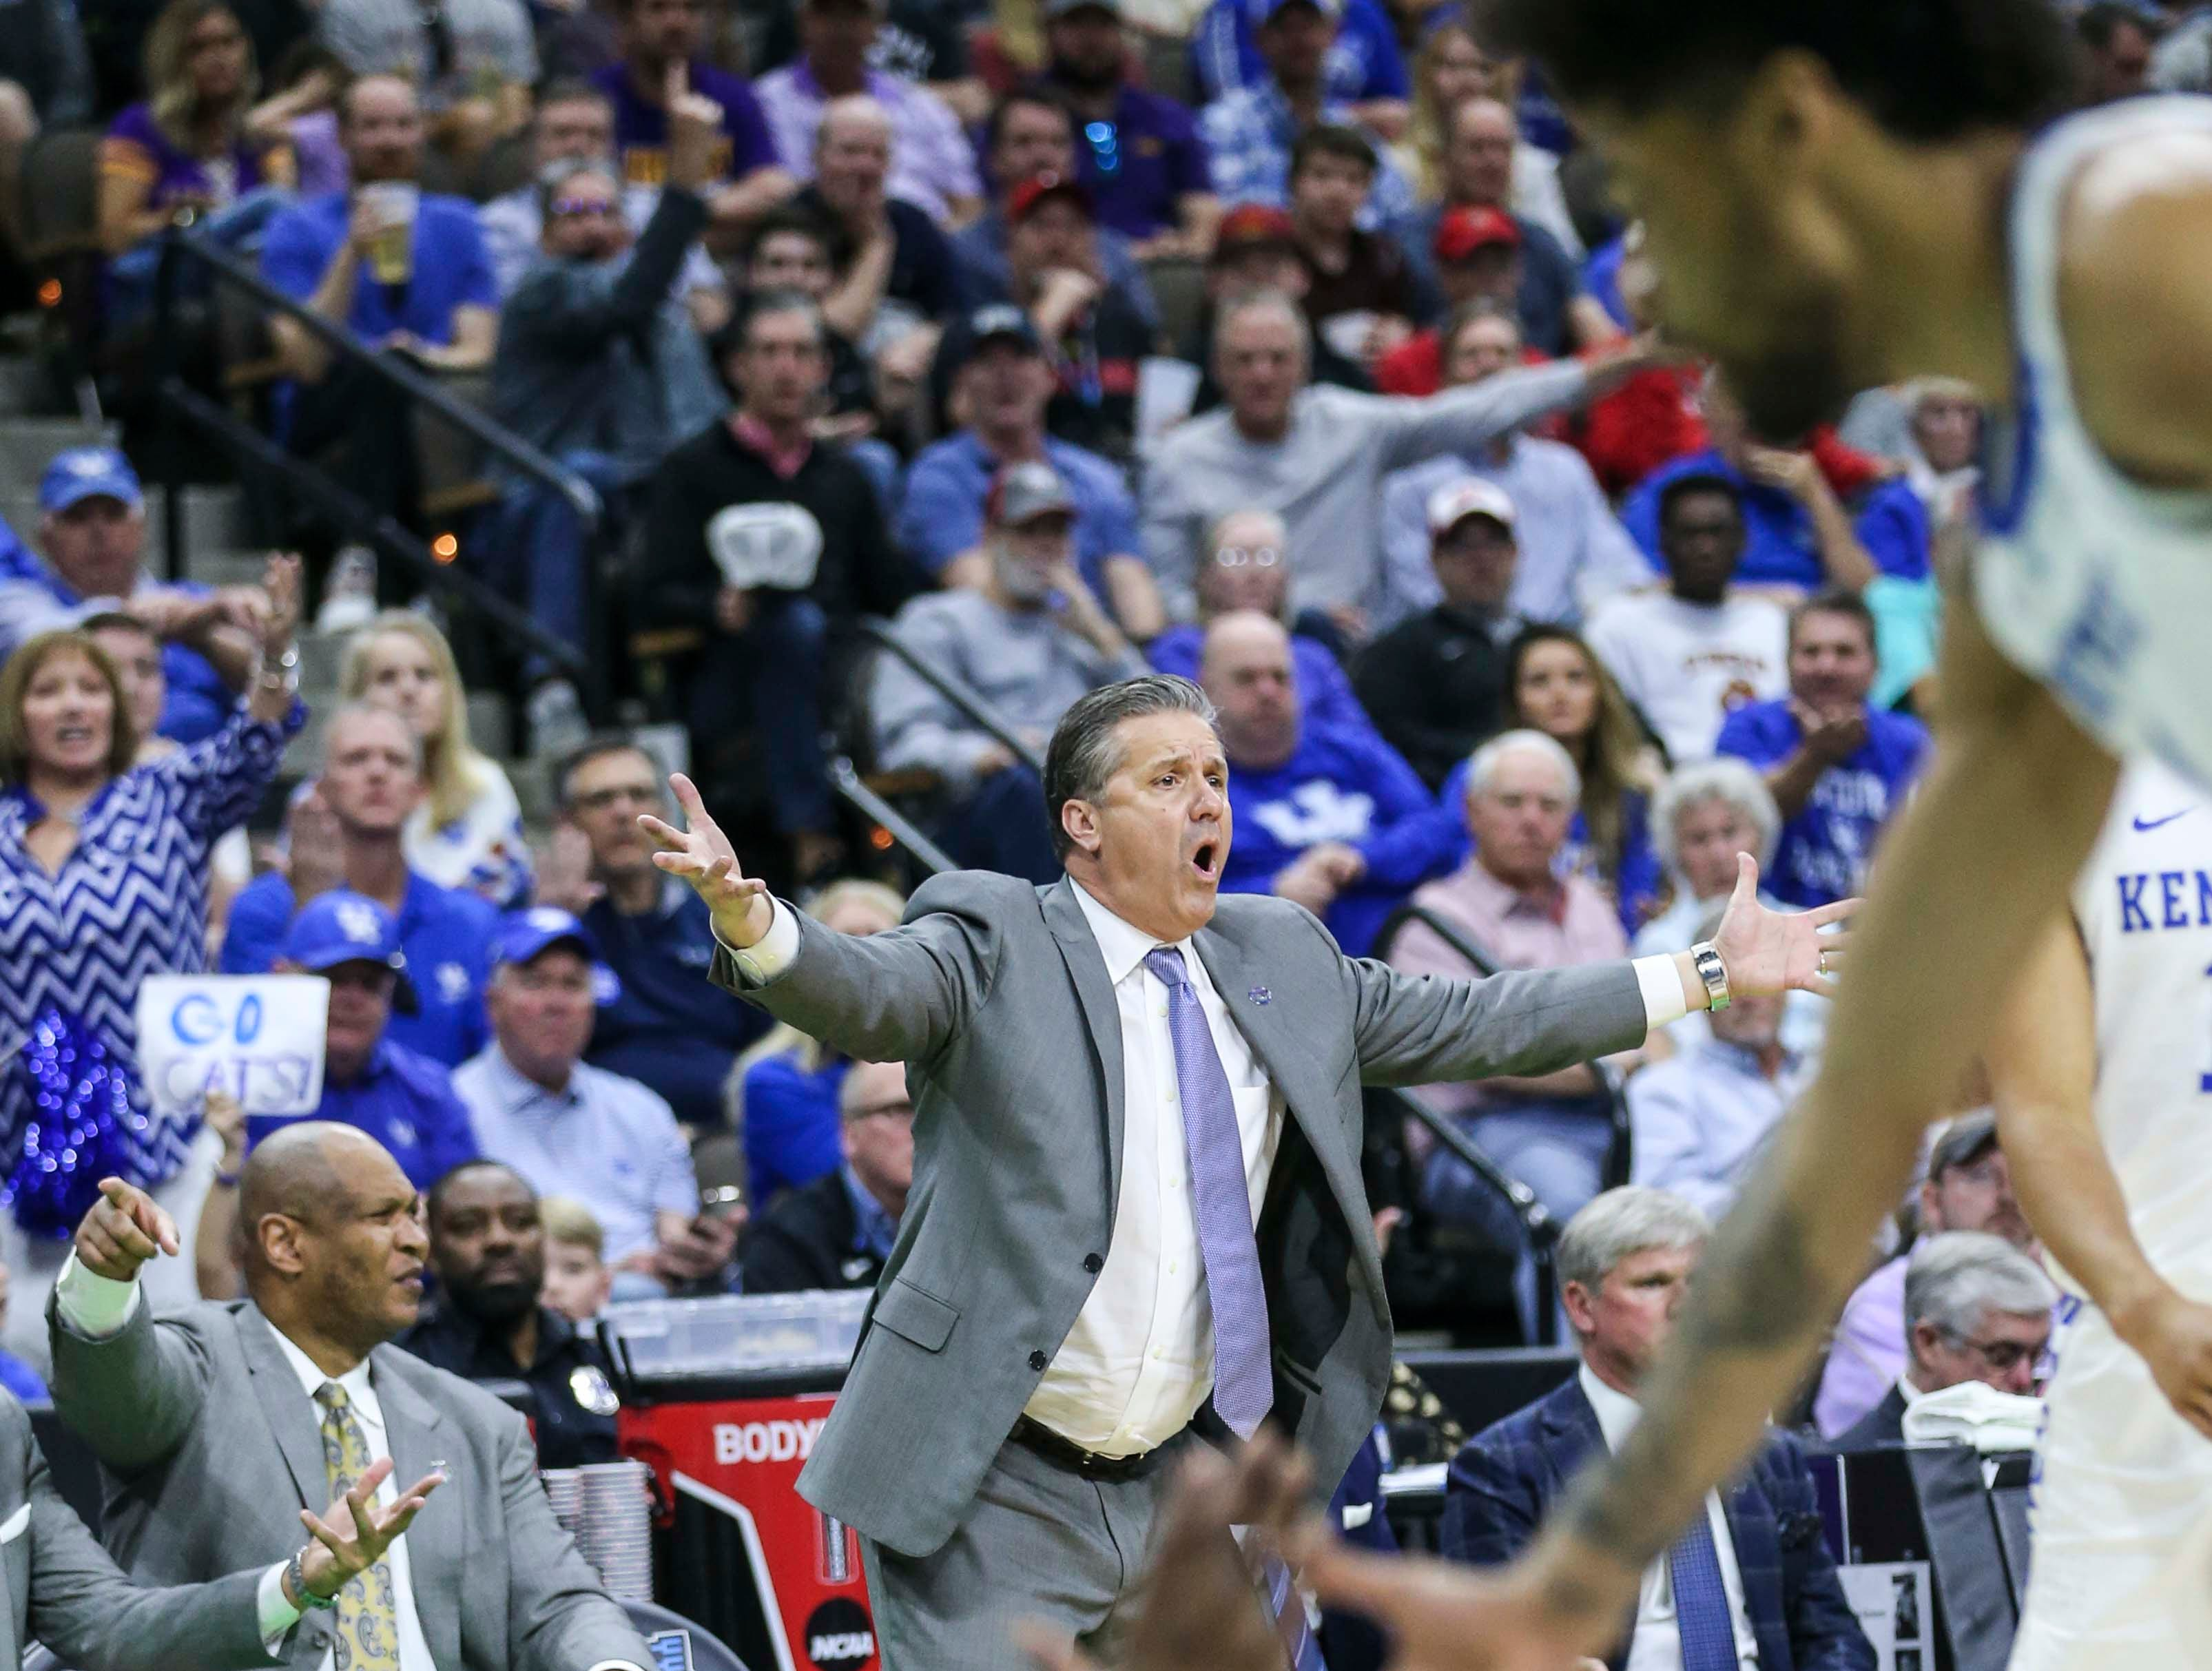 Kentucky's John Calipari couldn't believe that  Ashton Hagans wasn't fouled in the Wildcats' 62-56 win in the second round game of the 2019 NCAA tournament in Jacksonville, Fla. March 23, 2019